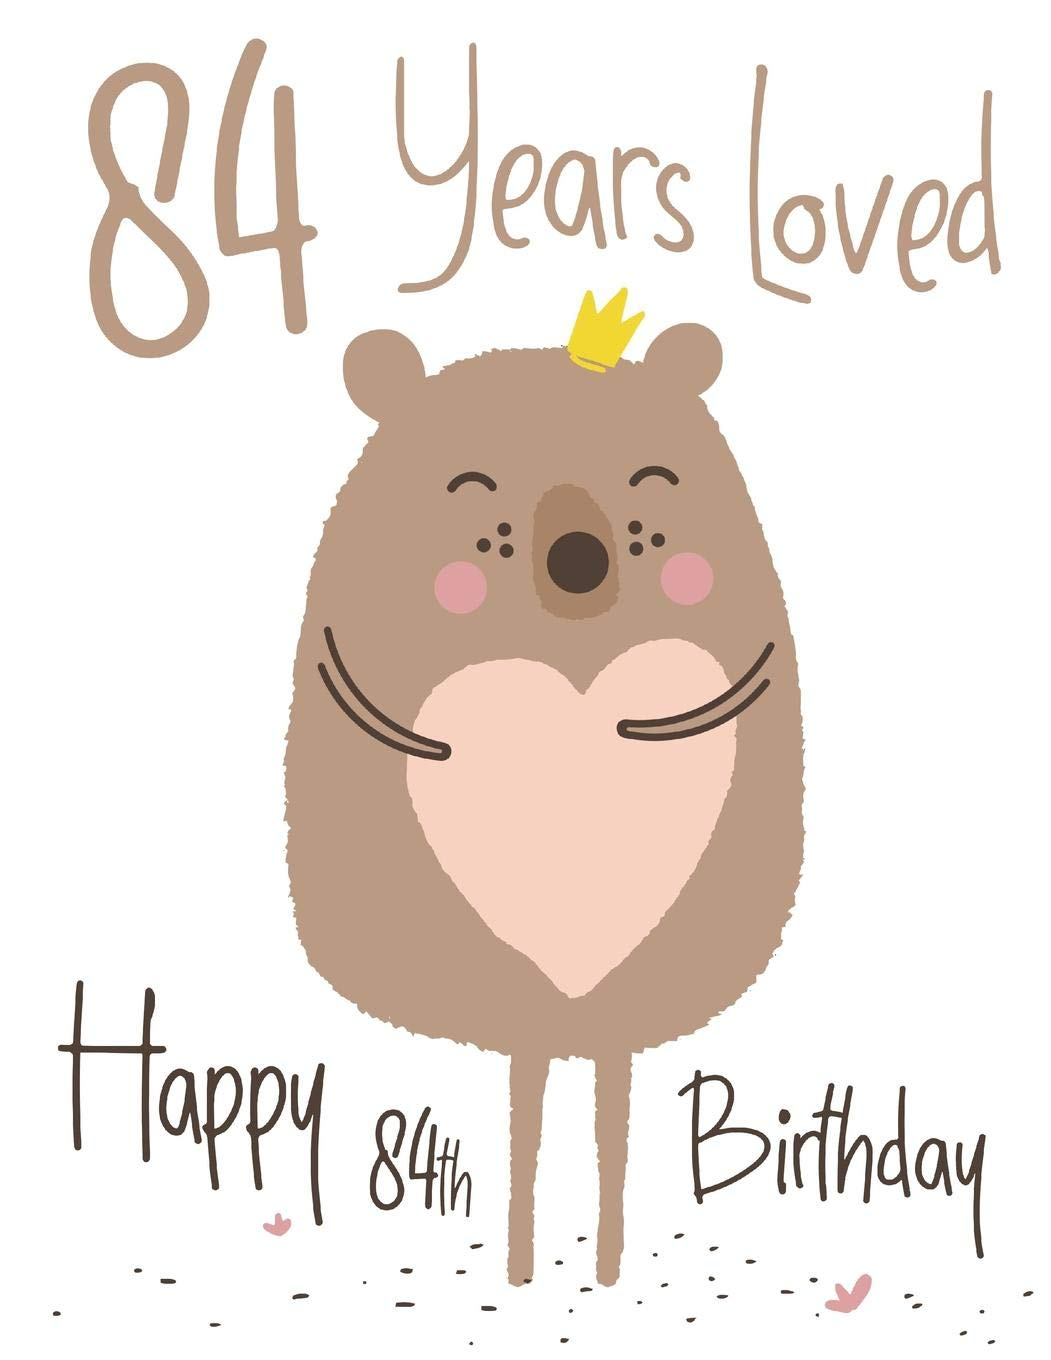 Happy 84th Birthday: 84 Years Loved, Show Your Love and Say.